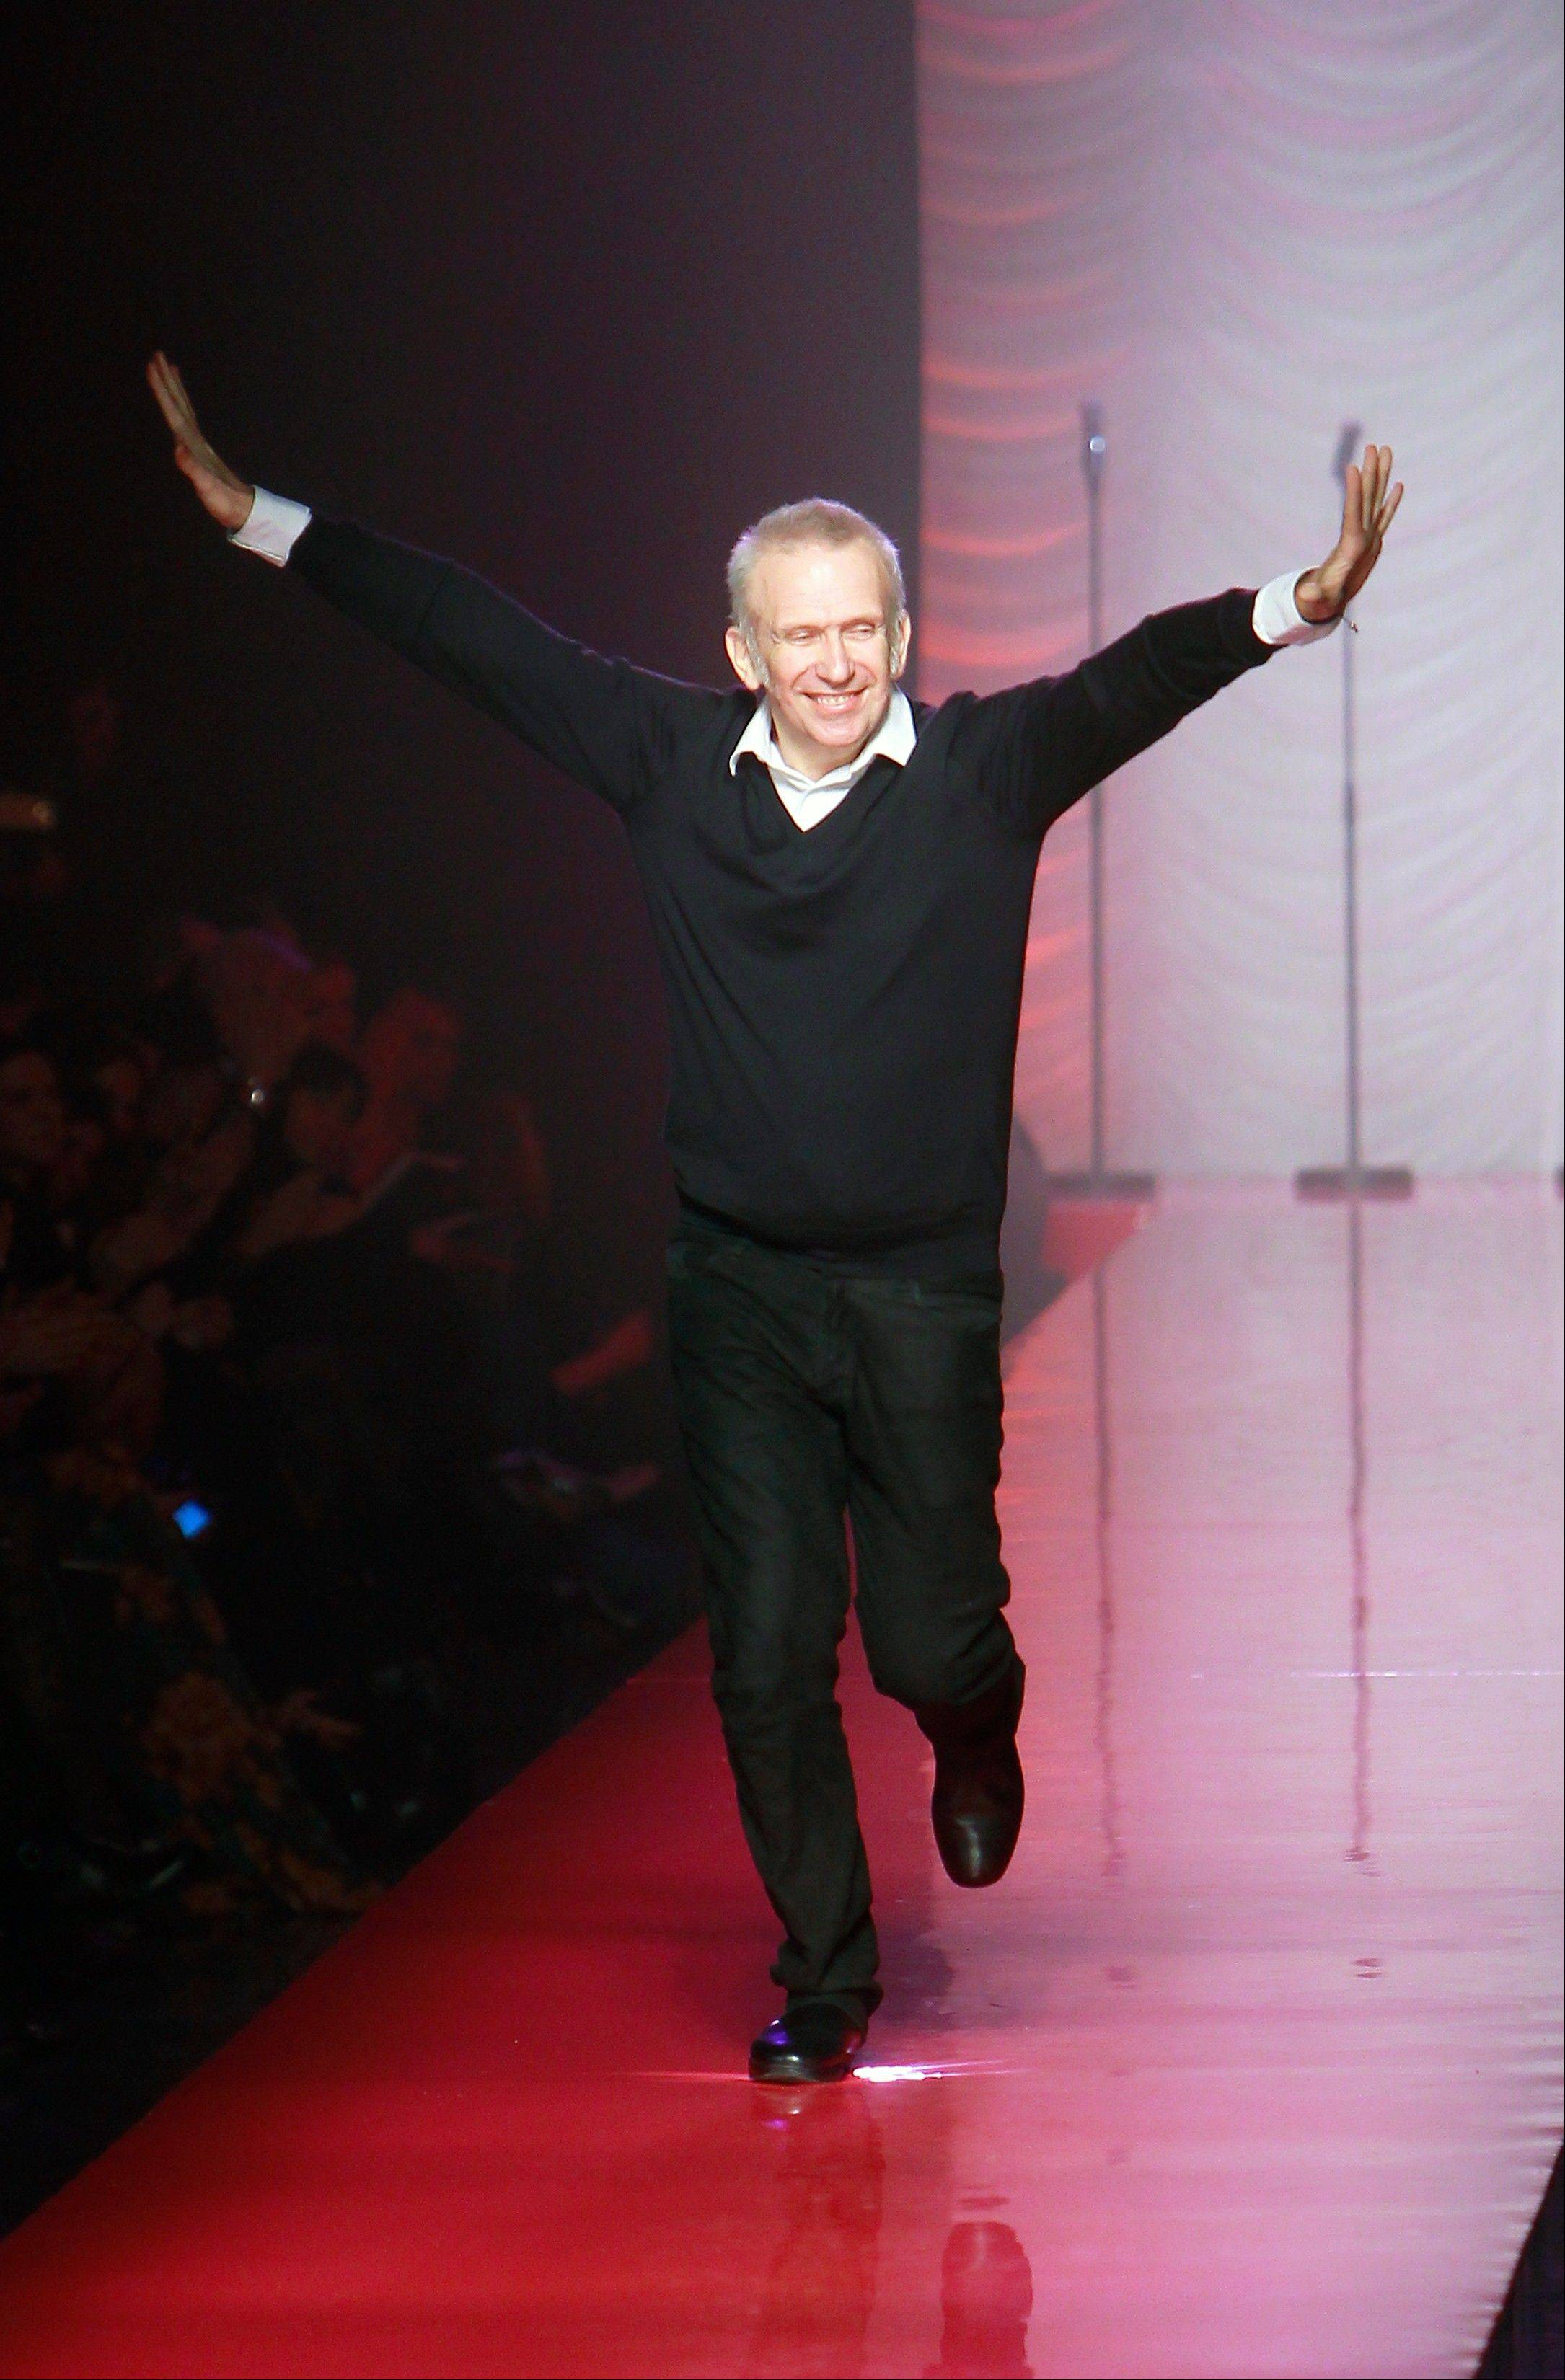 French Fashion designer Jean Paul Gaultier appears at the end of his presentation for Women's Spring Summer 2012 Haute Couture fashion collection presented in Paris, Wednesday, Jan. 25 2012.